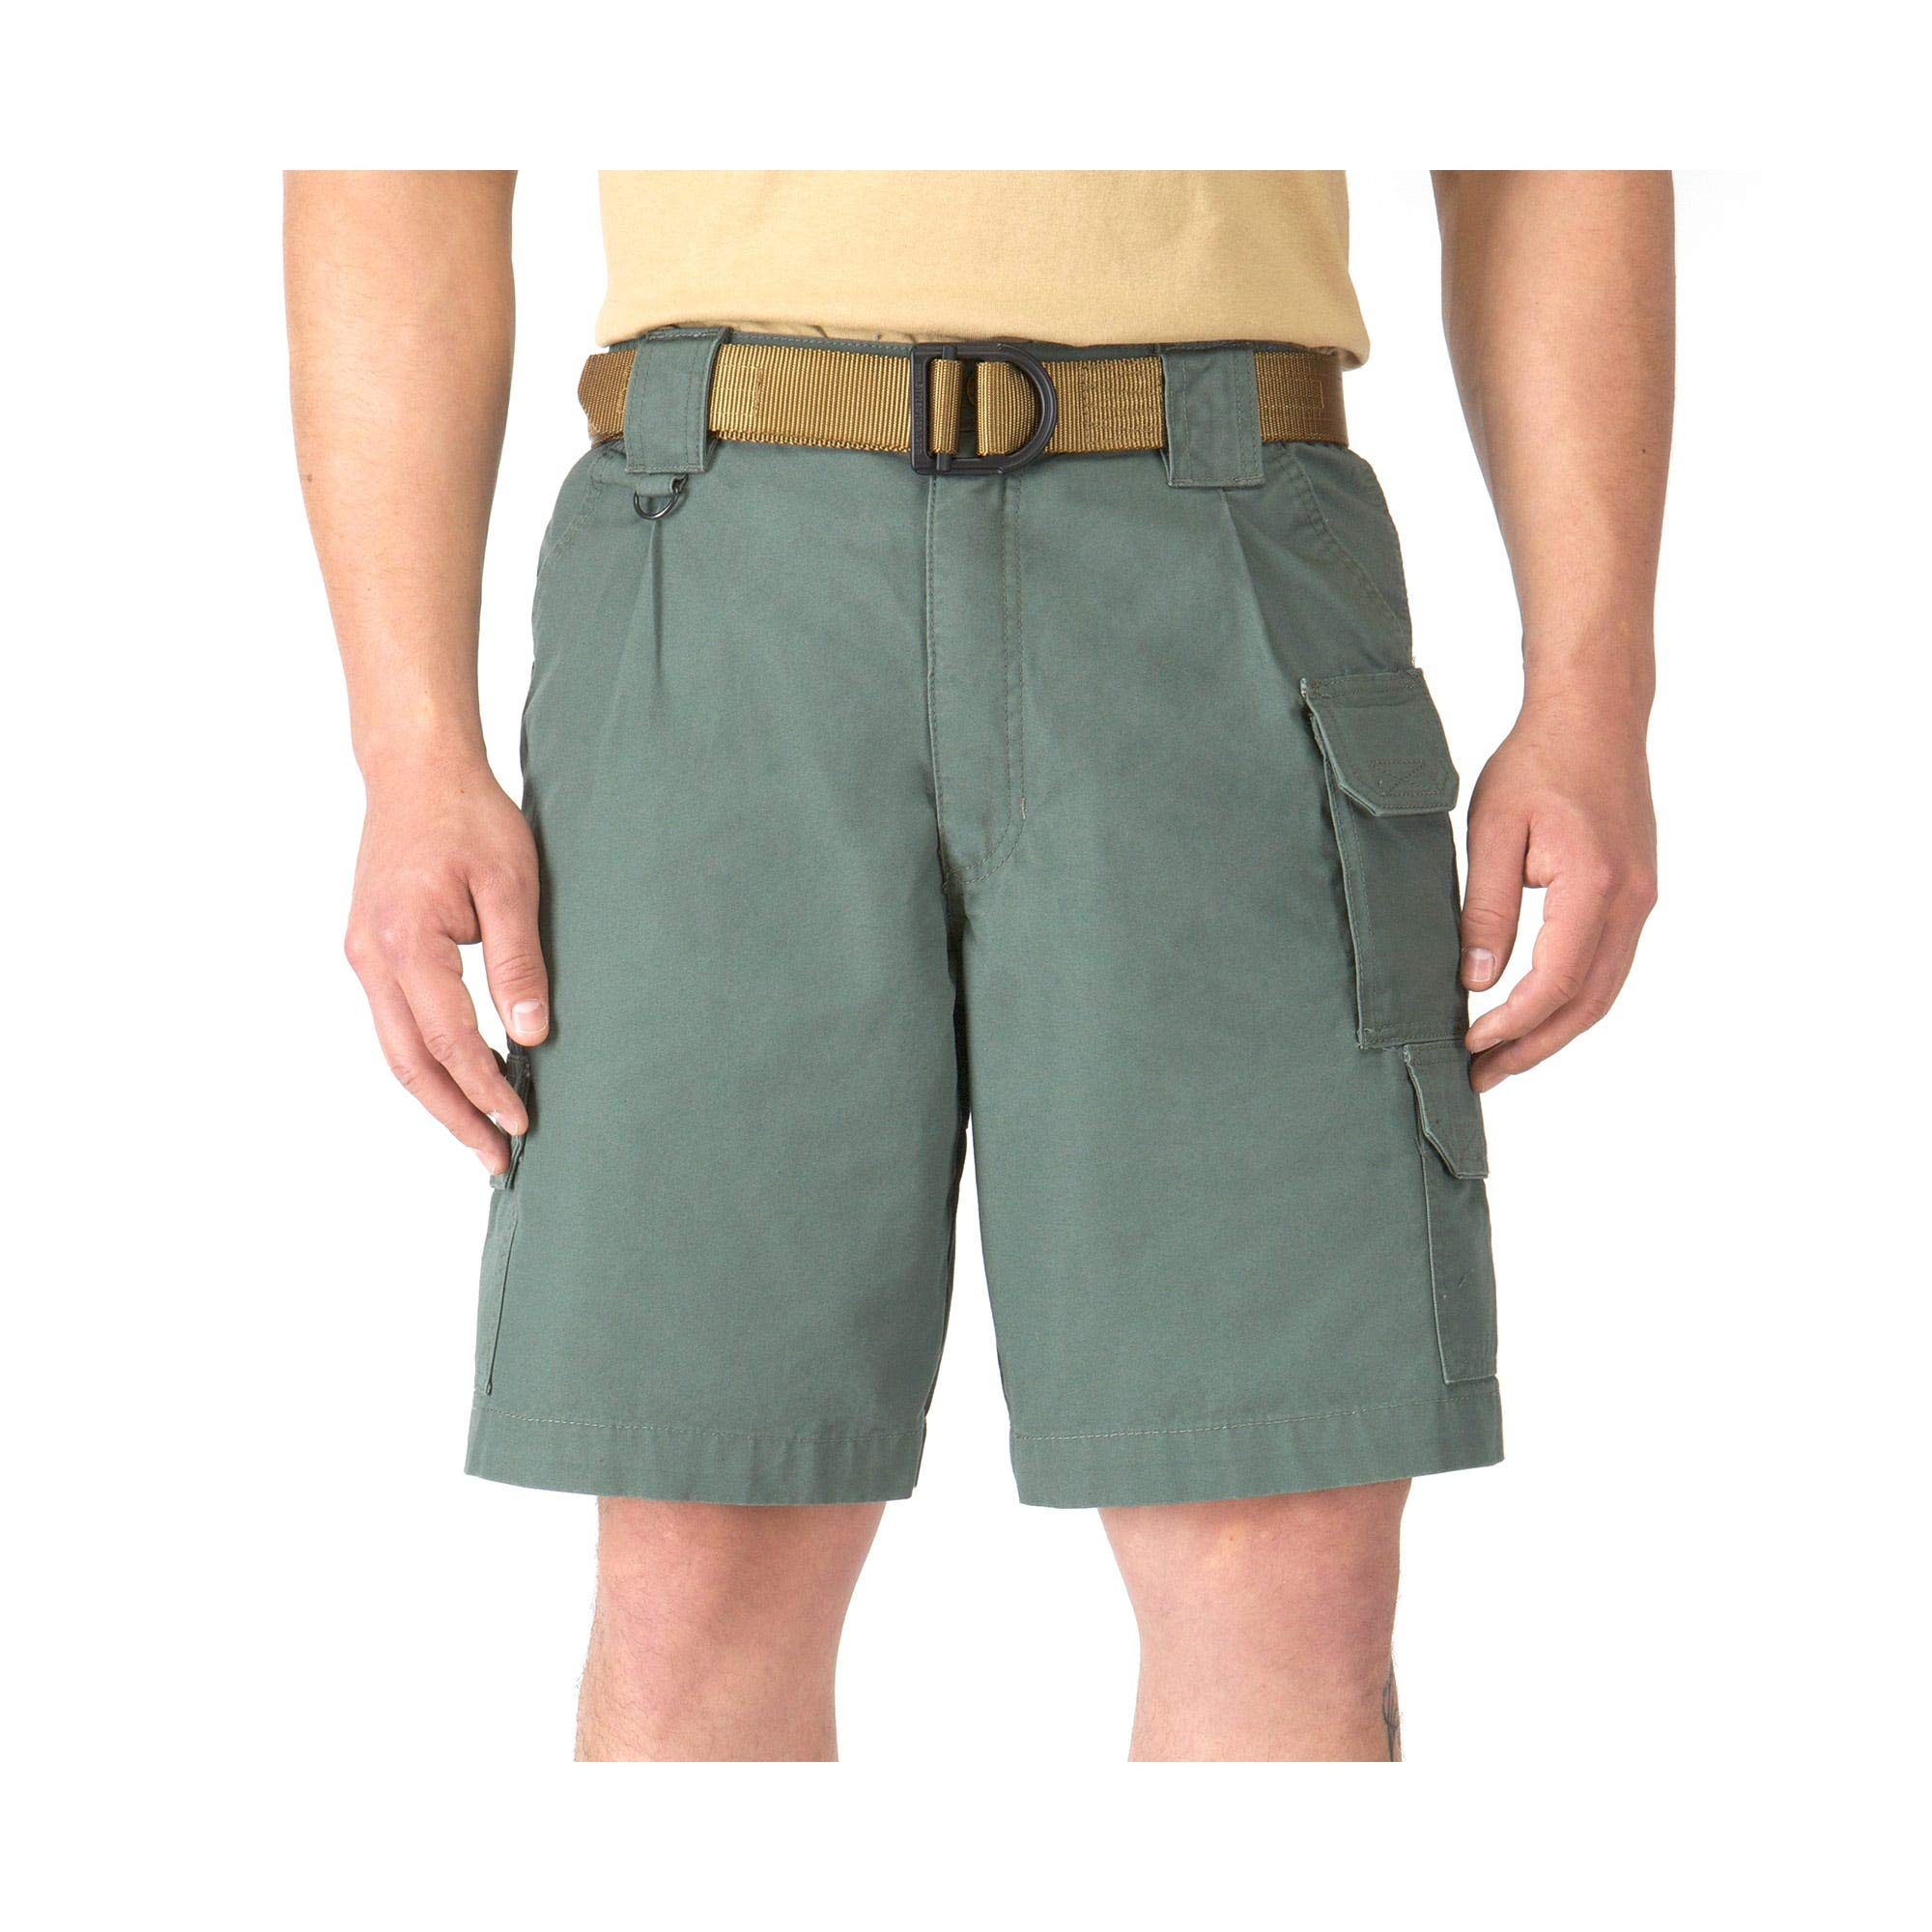 5.11 Tactical Men's 9-Inch Work Shorts, Cotton Canvas Fabric, Action Waistband, 7 Pockets, Style 73285